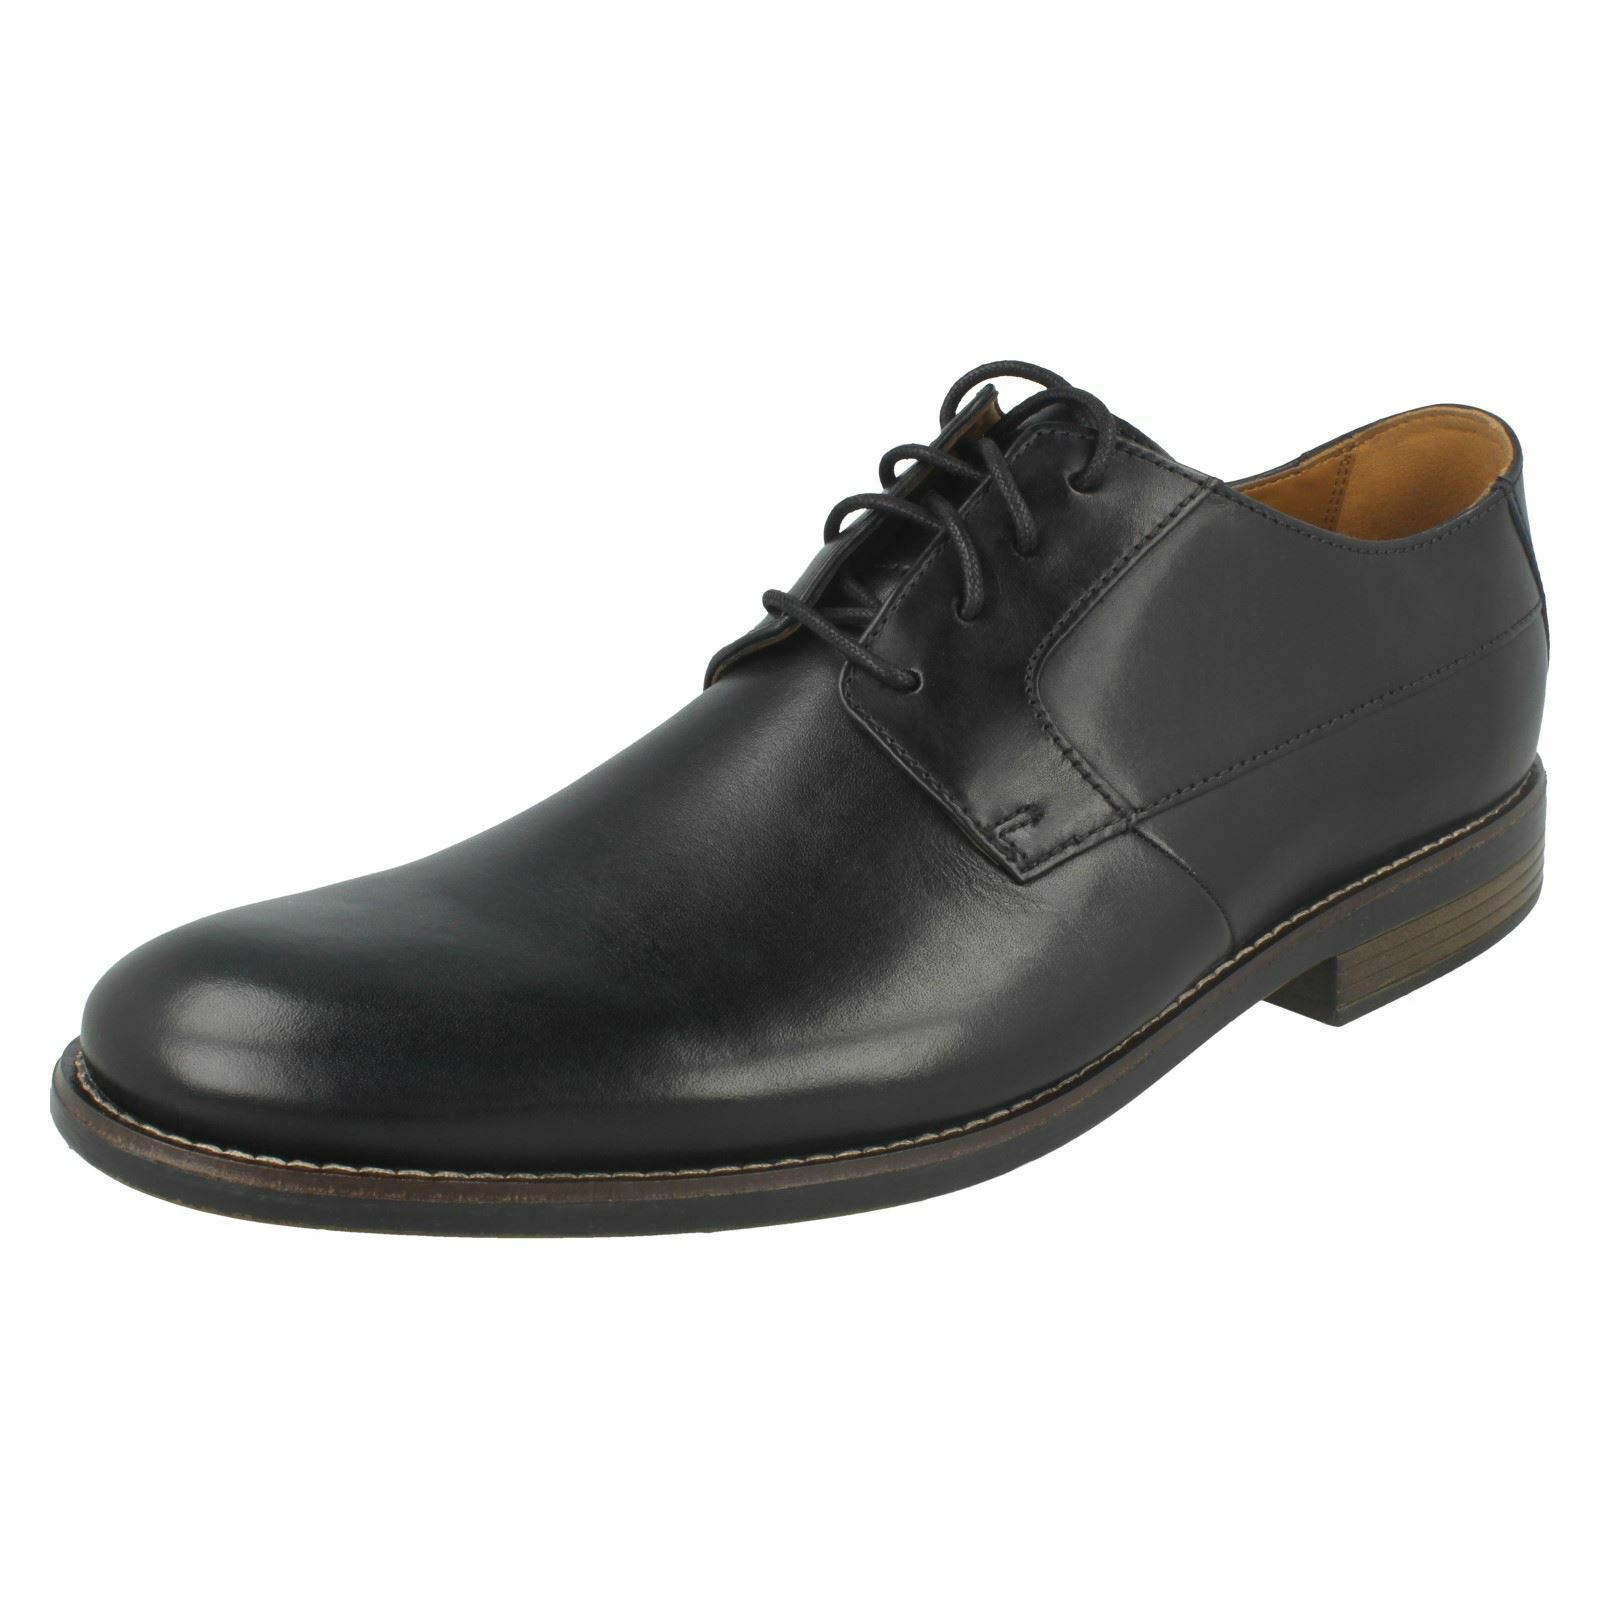 CLARKS Becken Plain Hombre Leather Up Lace Up Leather Gibson Zapatos f2a6db